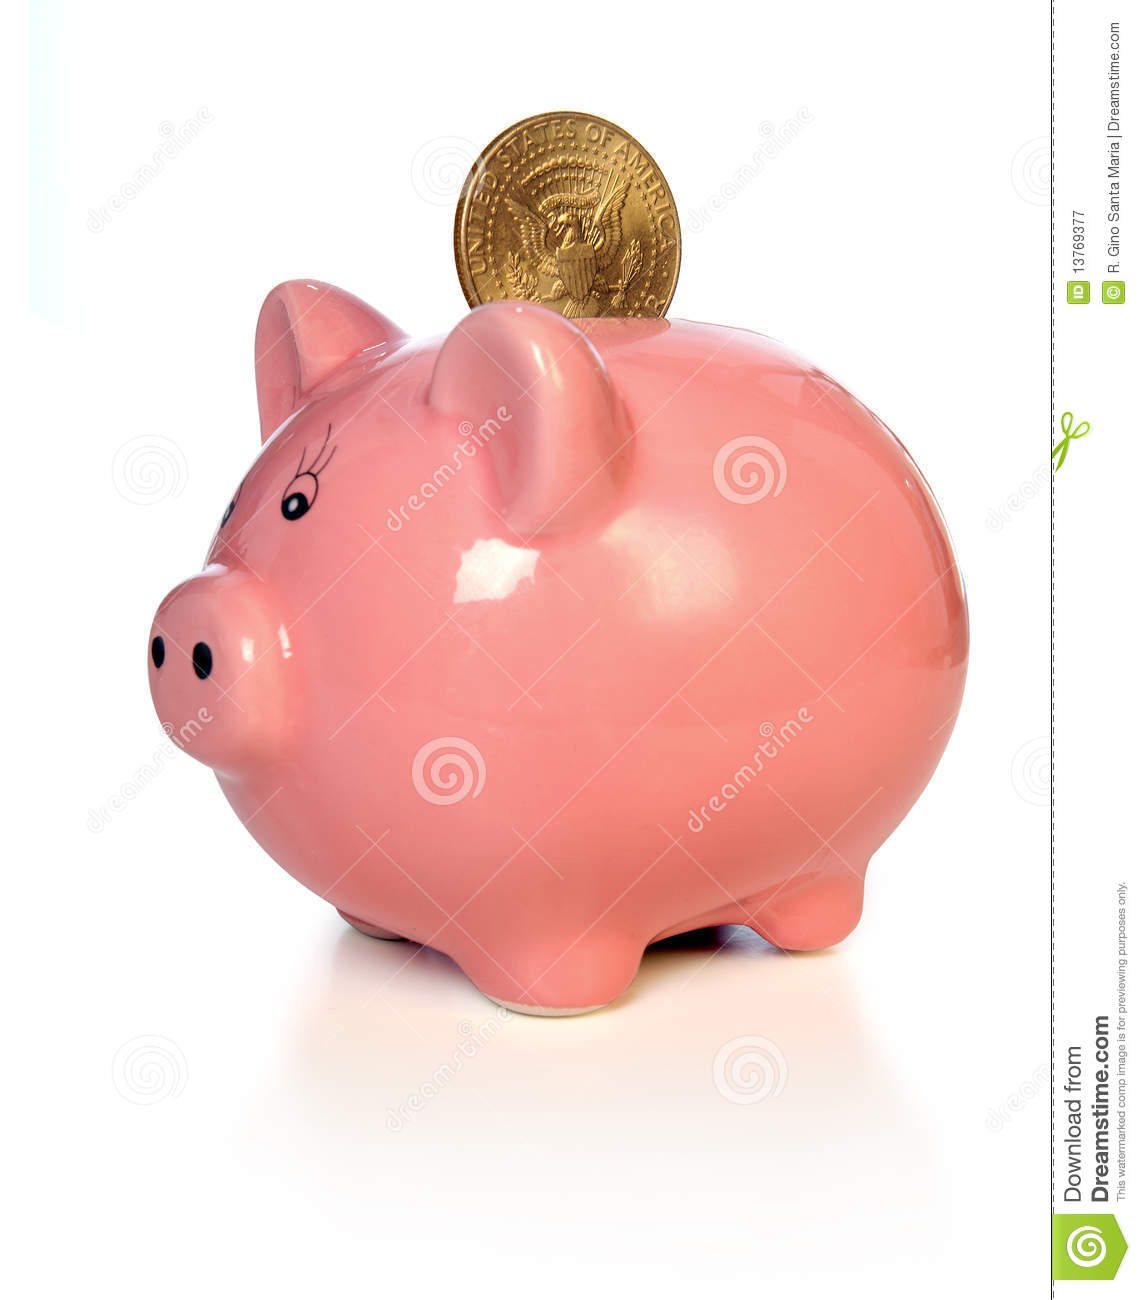 Piggy Bank With Gold Coin Stock Image. Image Of Wealth